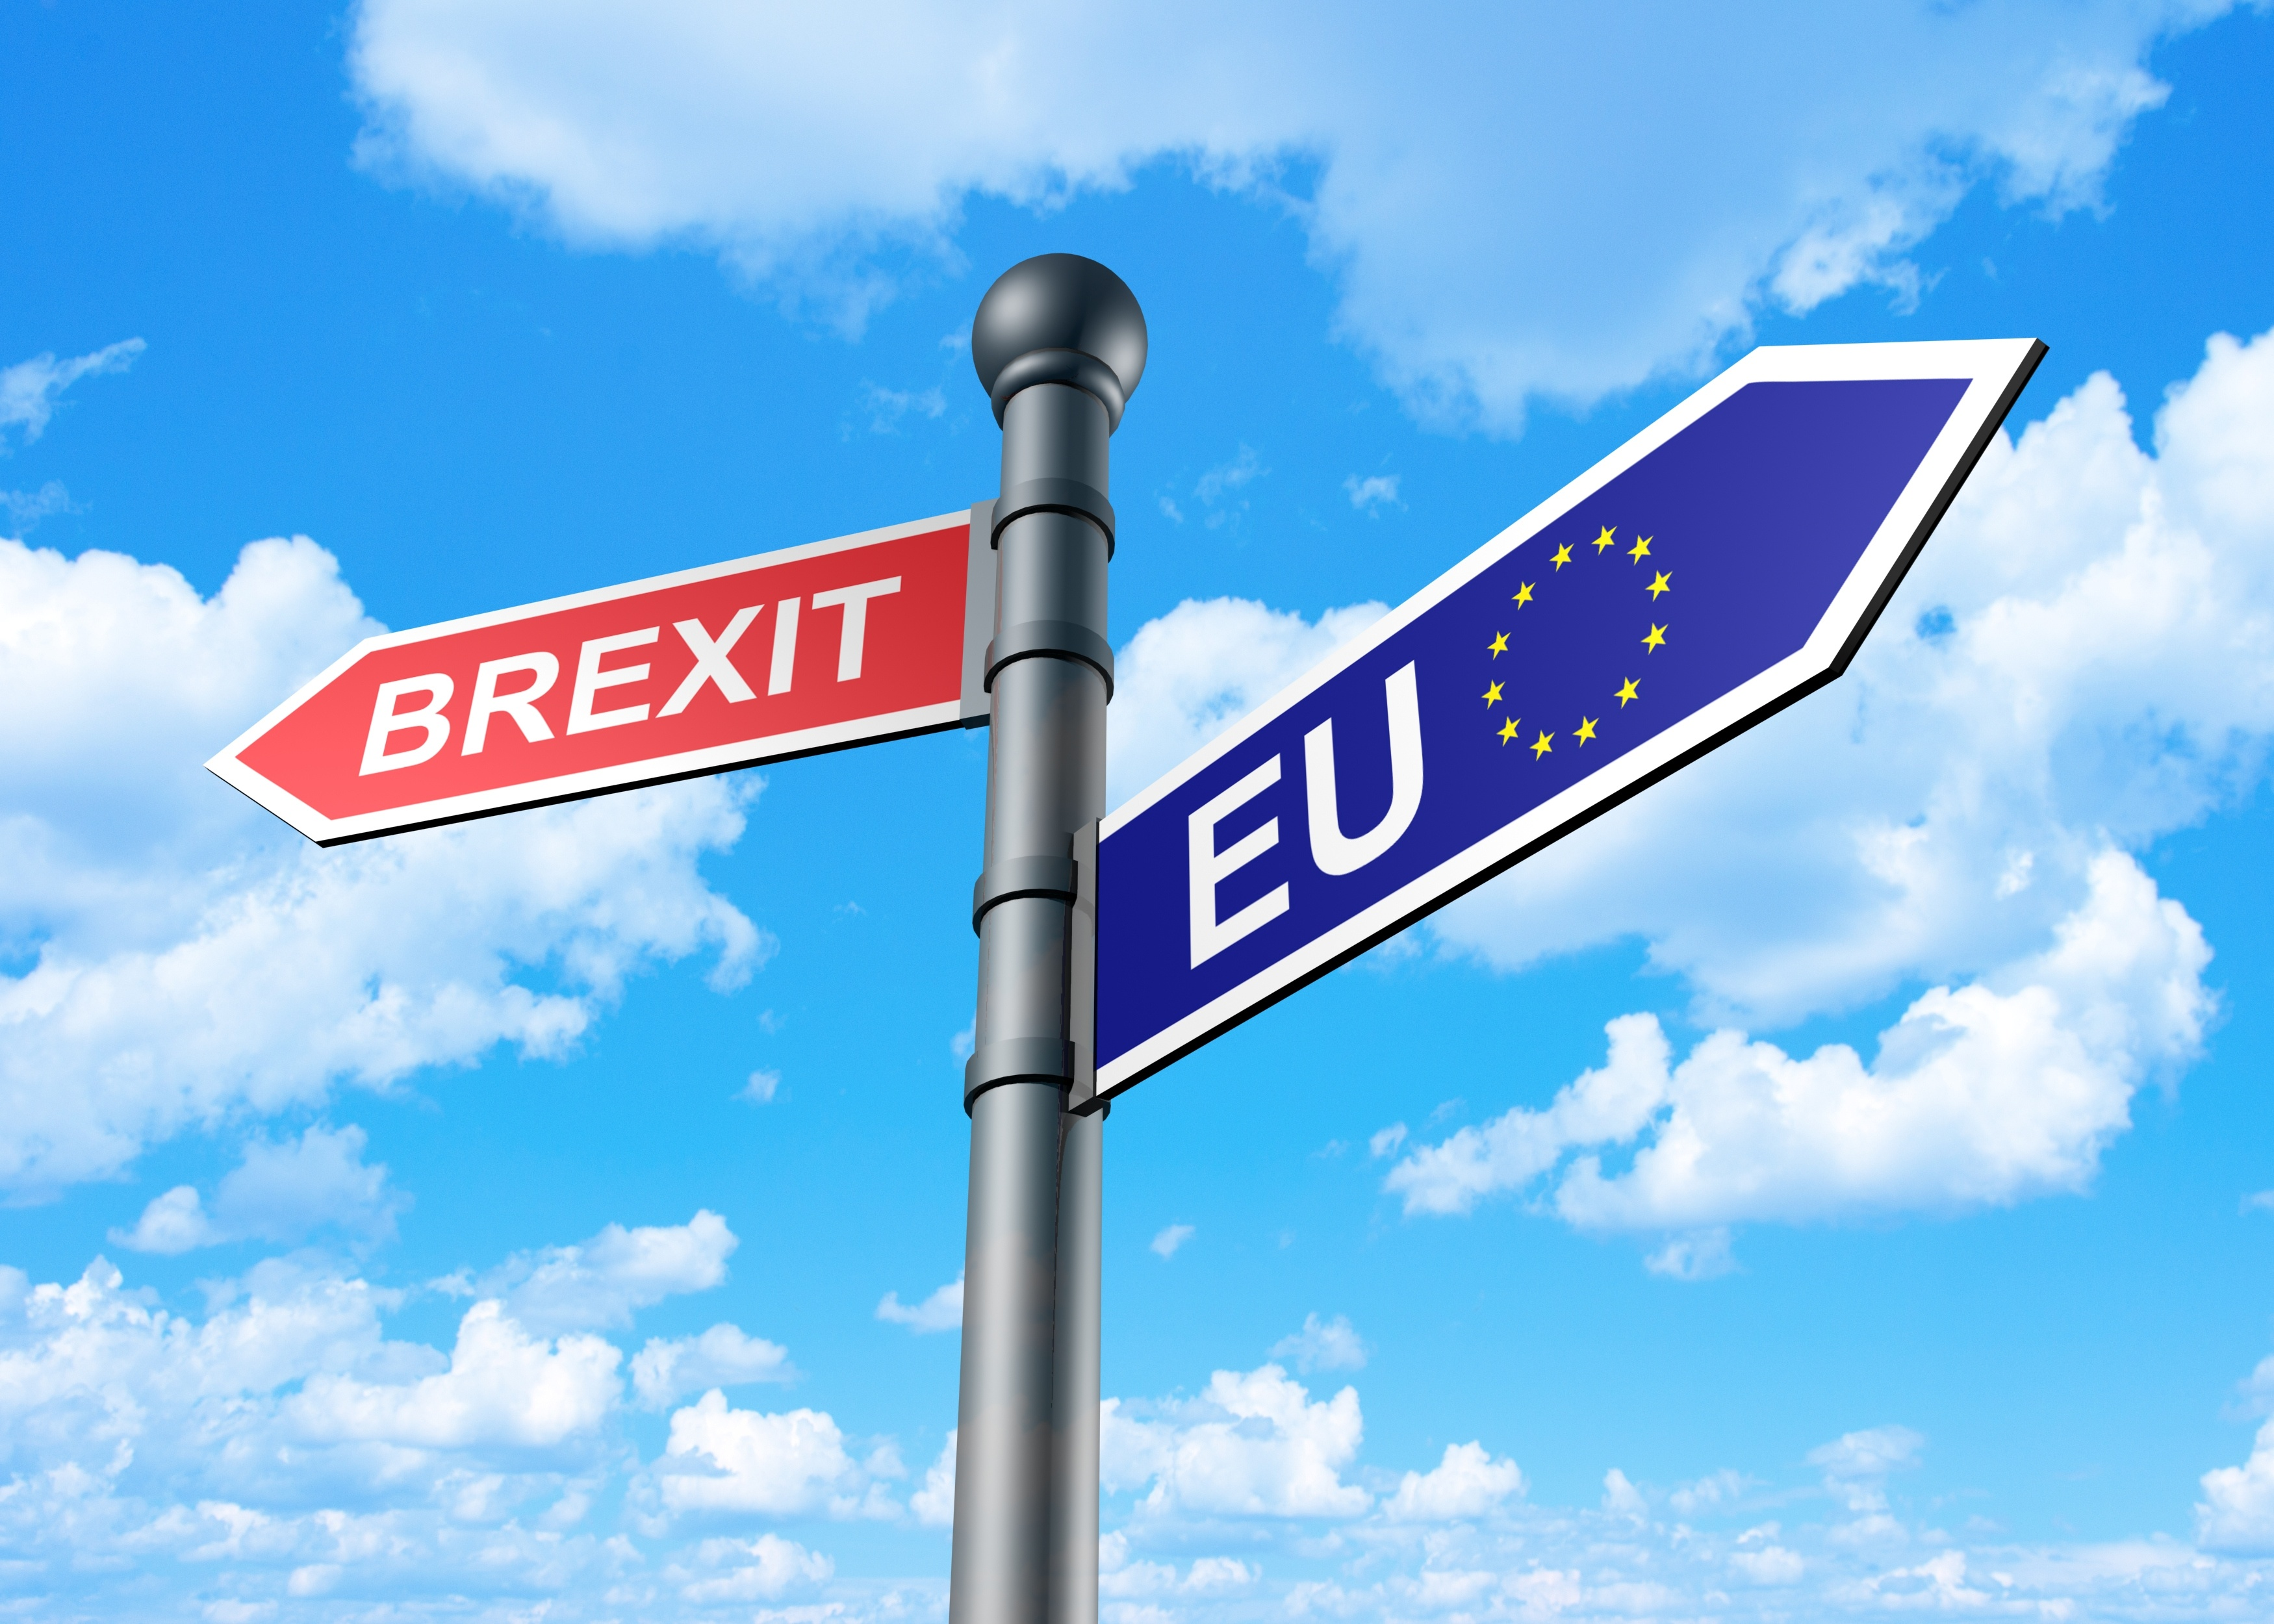 Brexit street sign, brexit to the left EU to the right.jpg